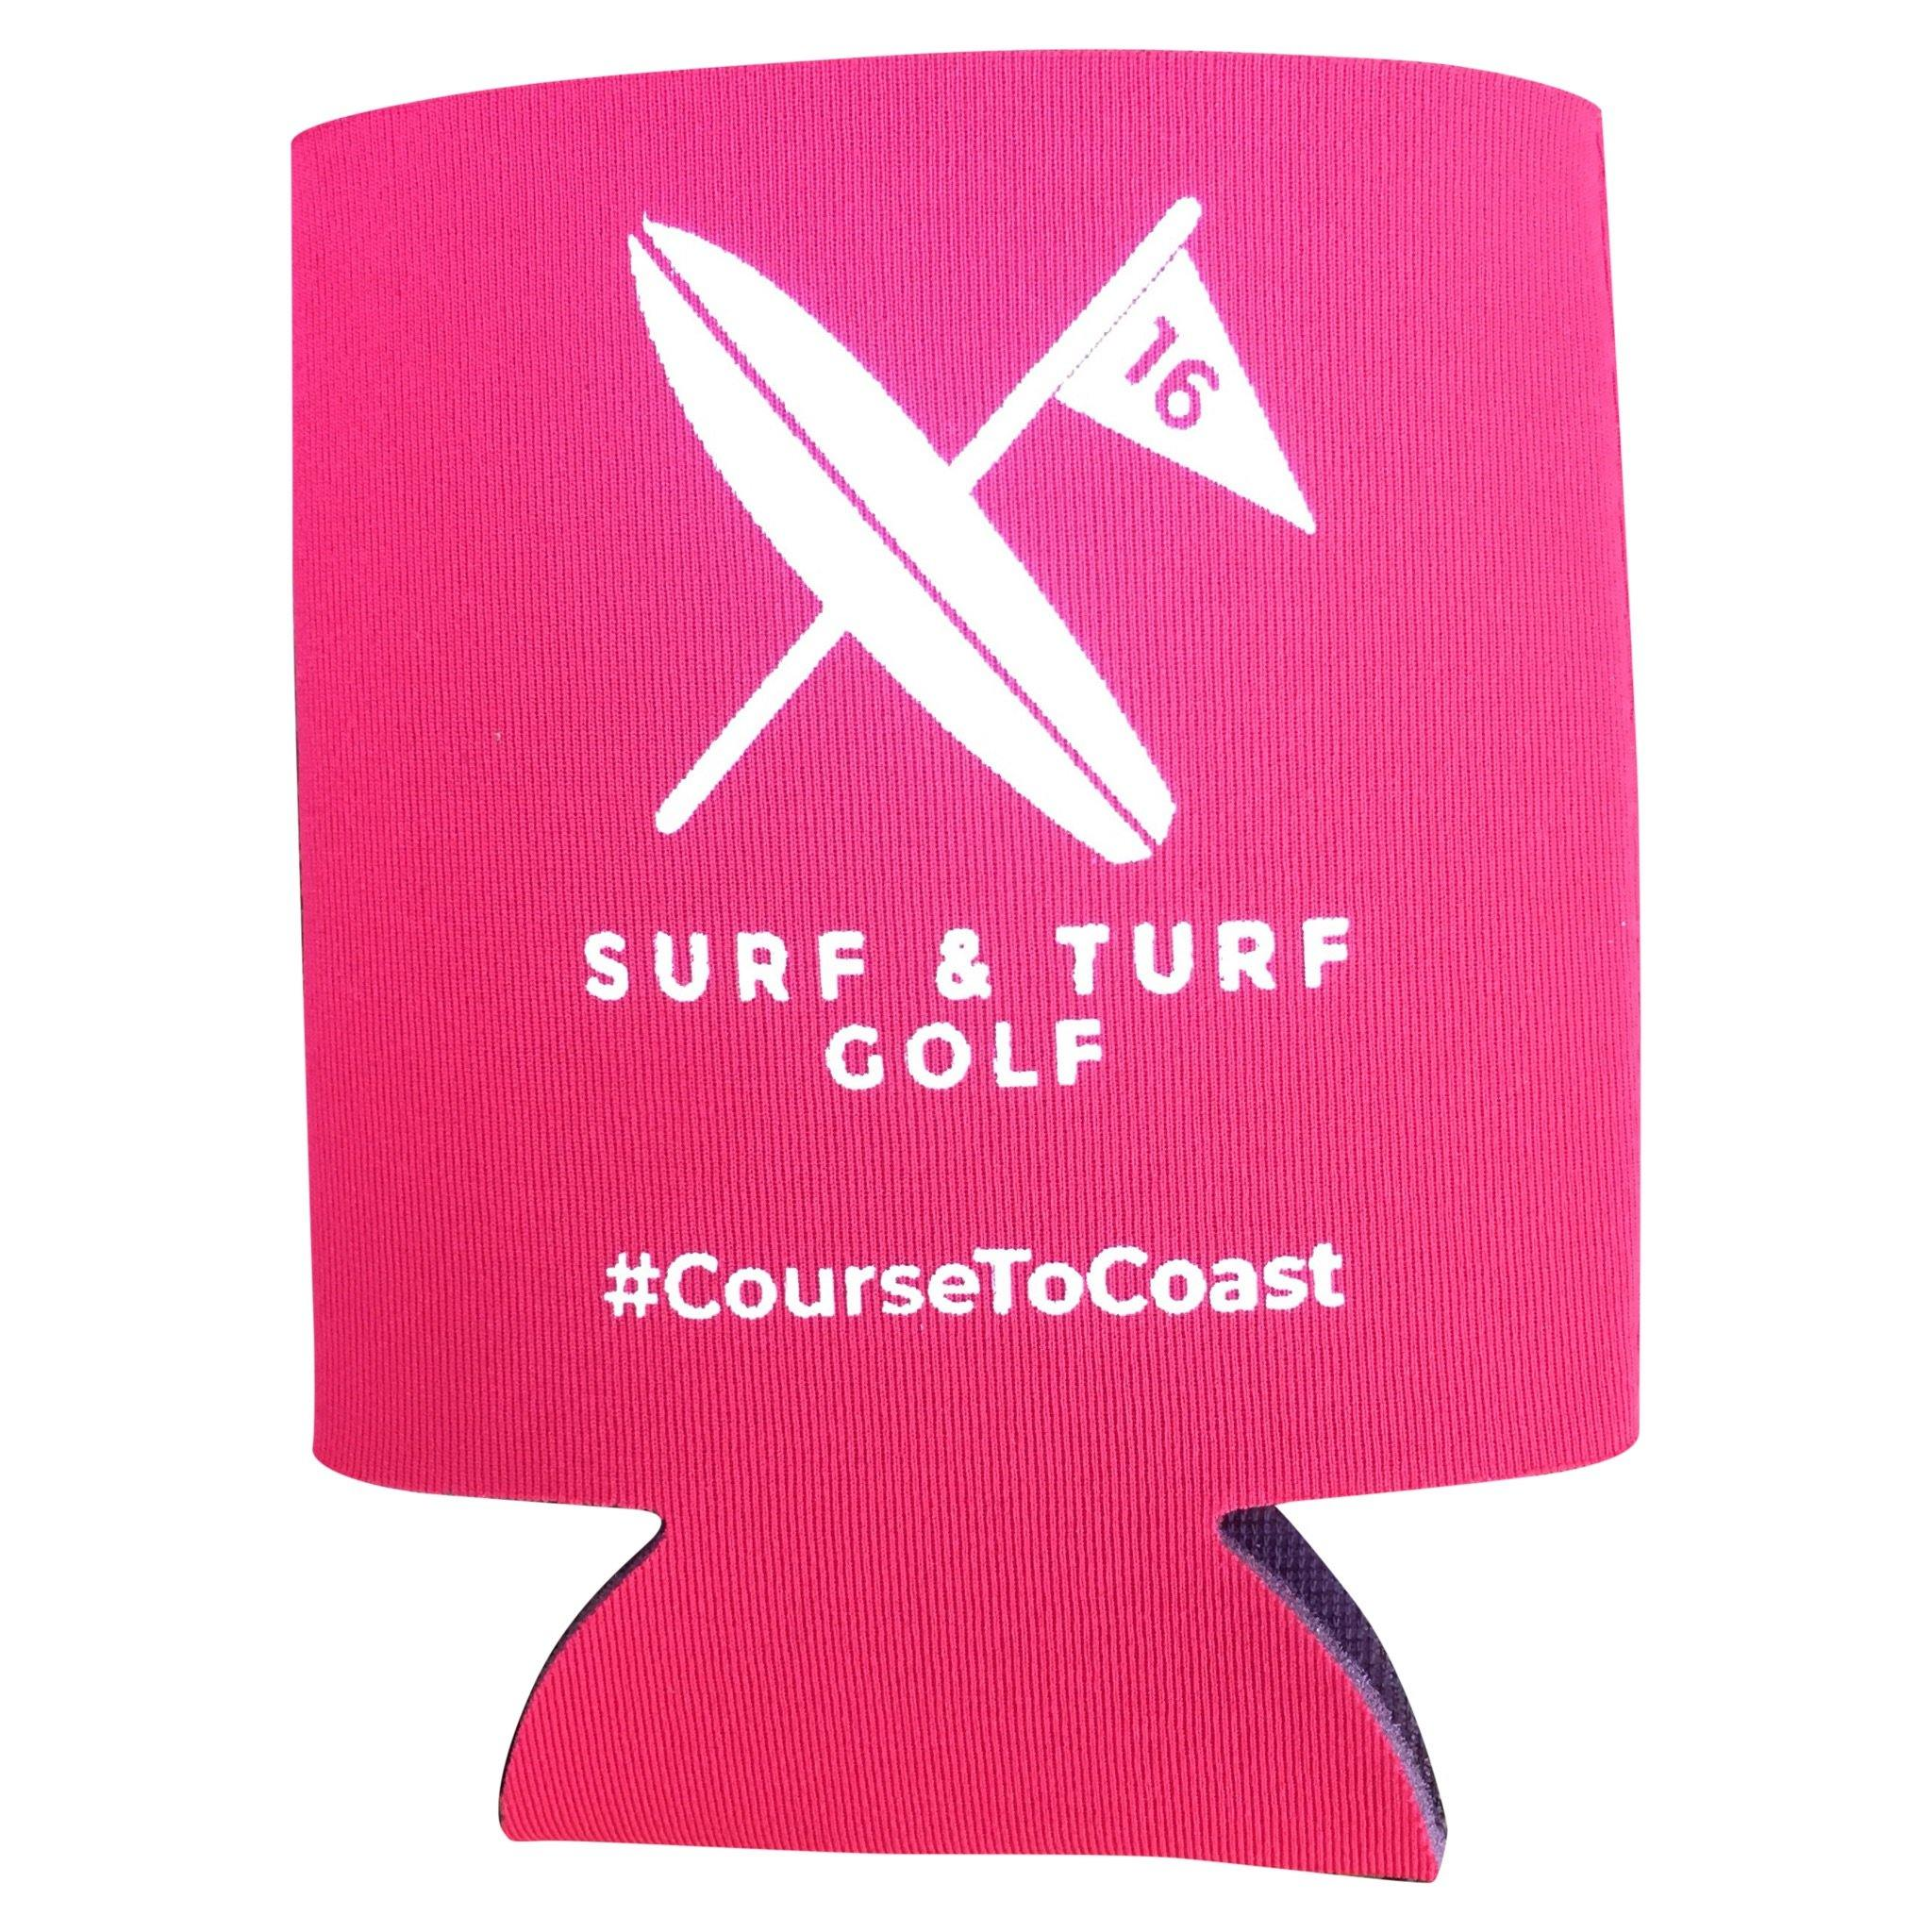 Koozie 5 - Surf & Turf Golf